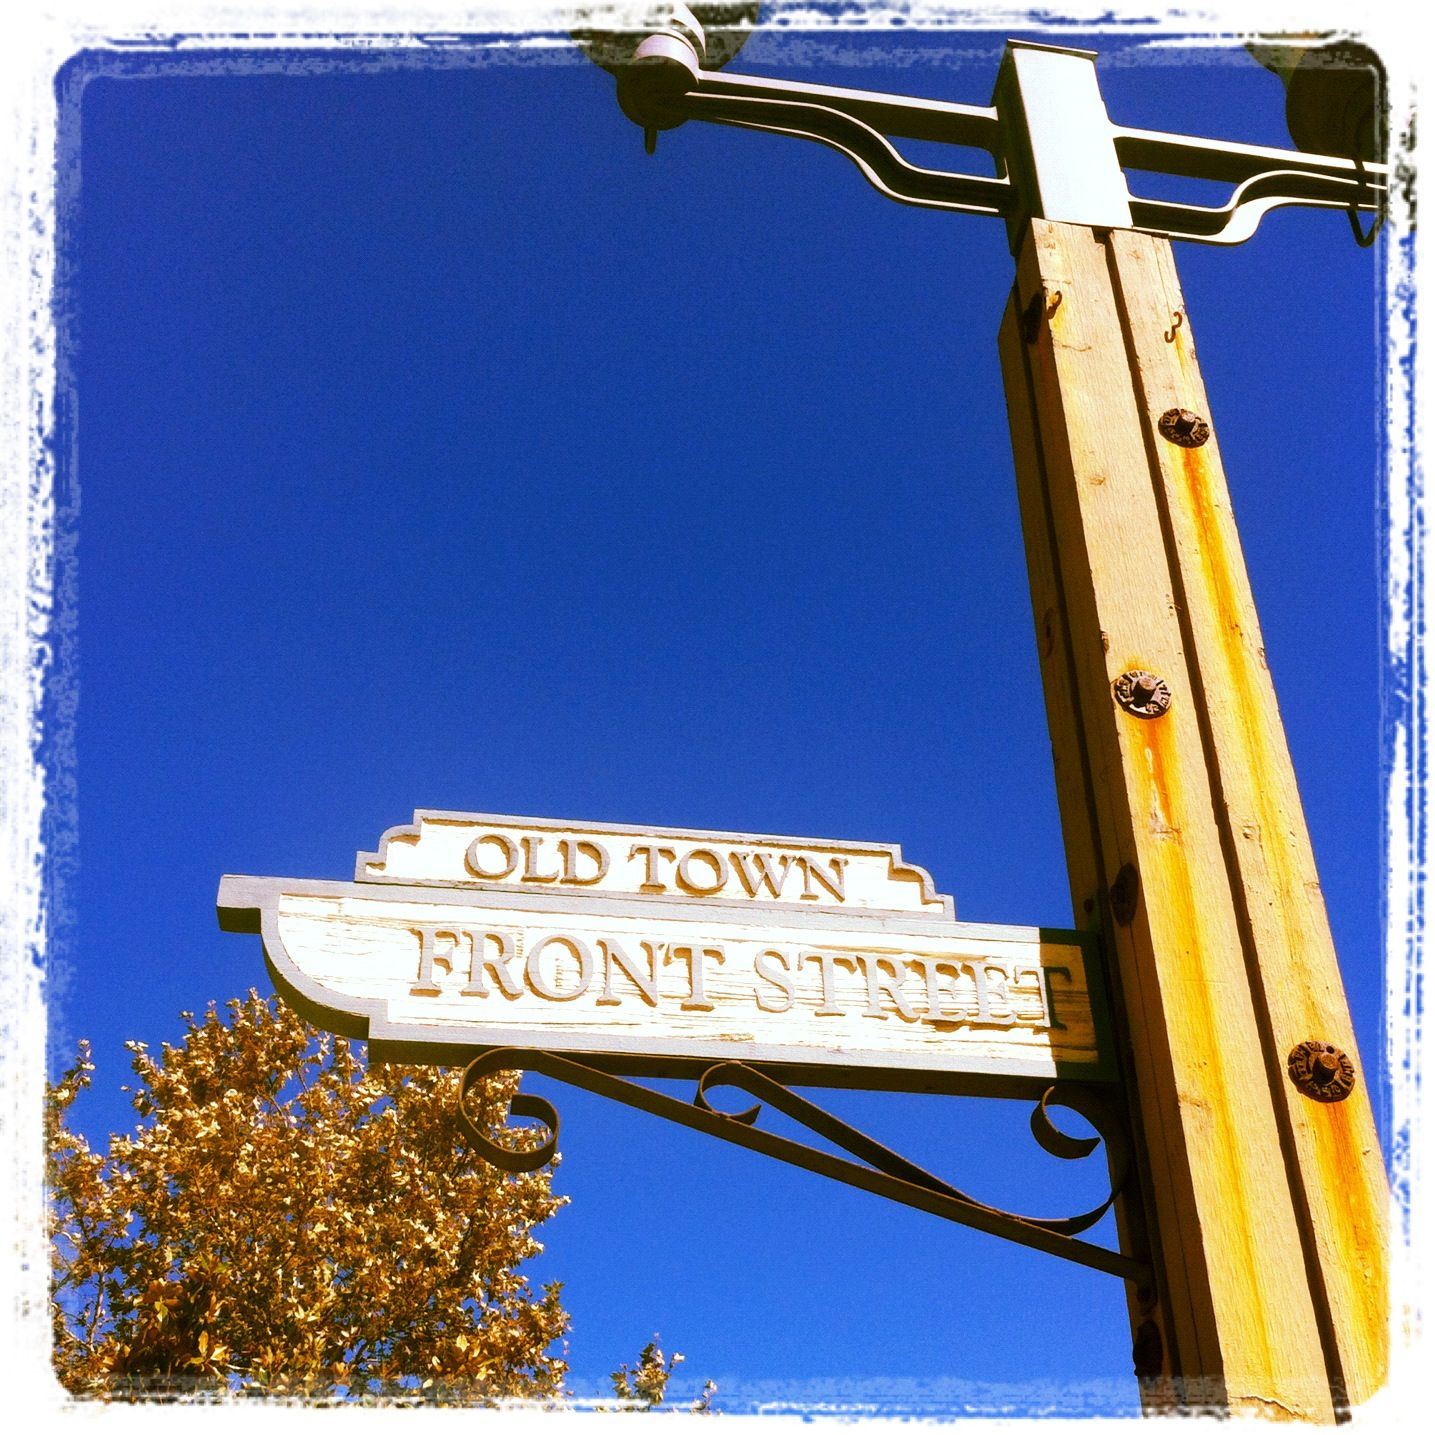 No 17 Visit Old Town Temecula And Go Antique Shopping Temecula Ca Pinterest